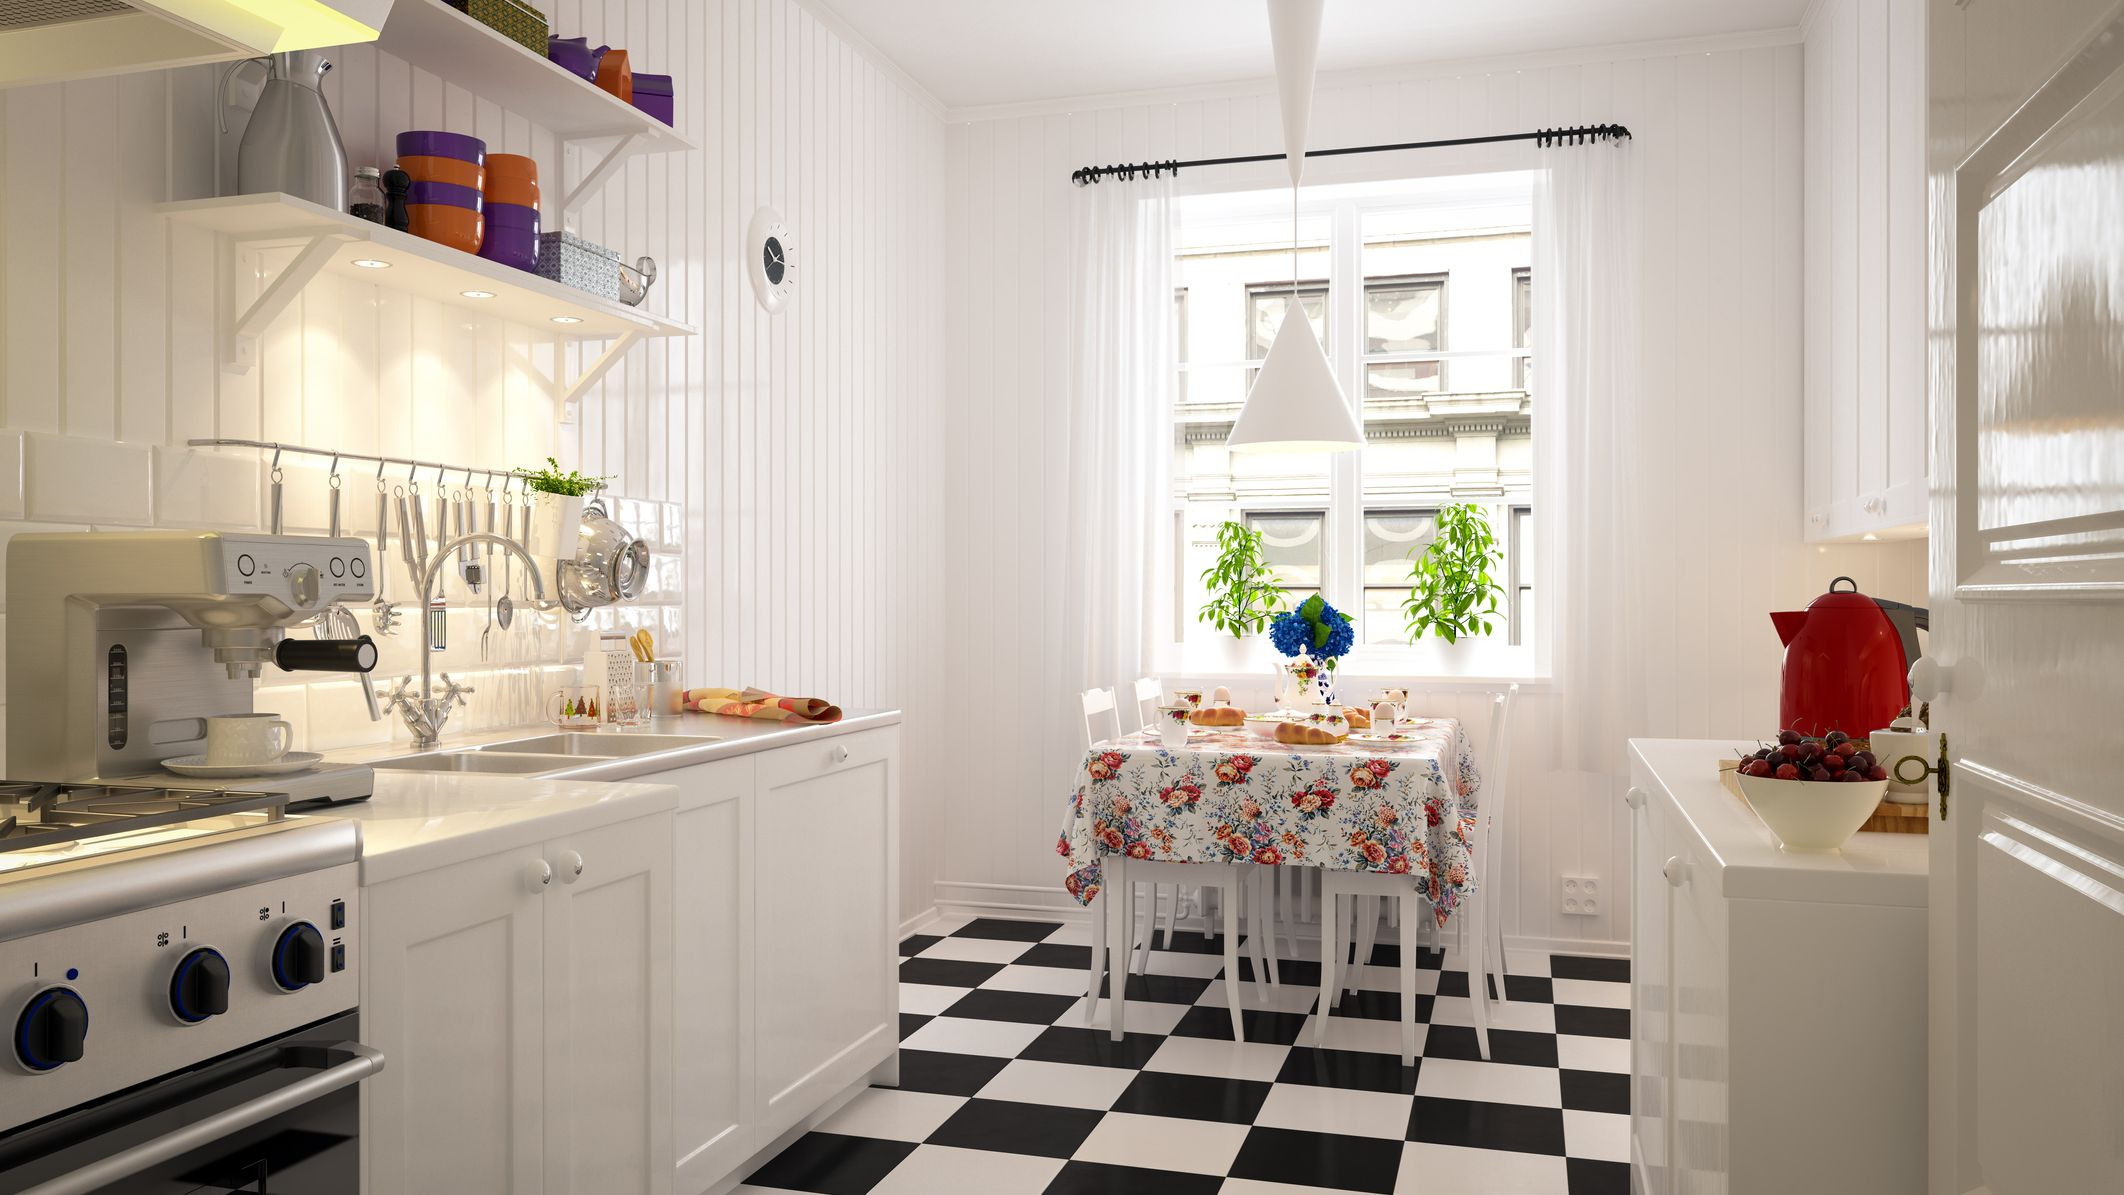 8 Elements Of A Vintage Kitchen Photos And Ideas